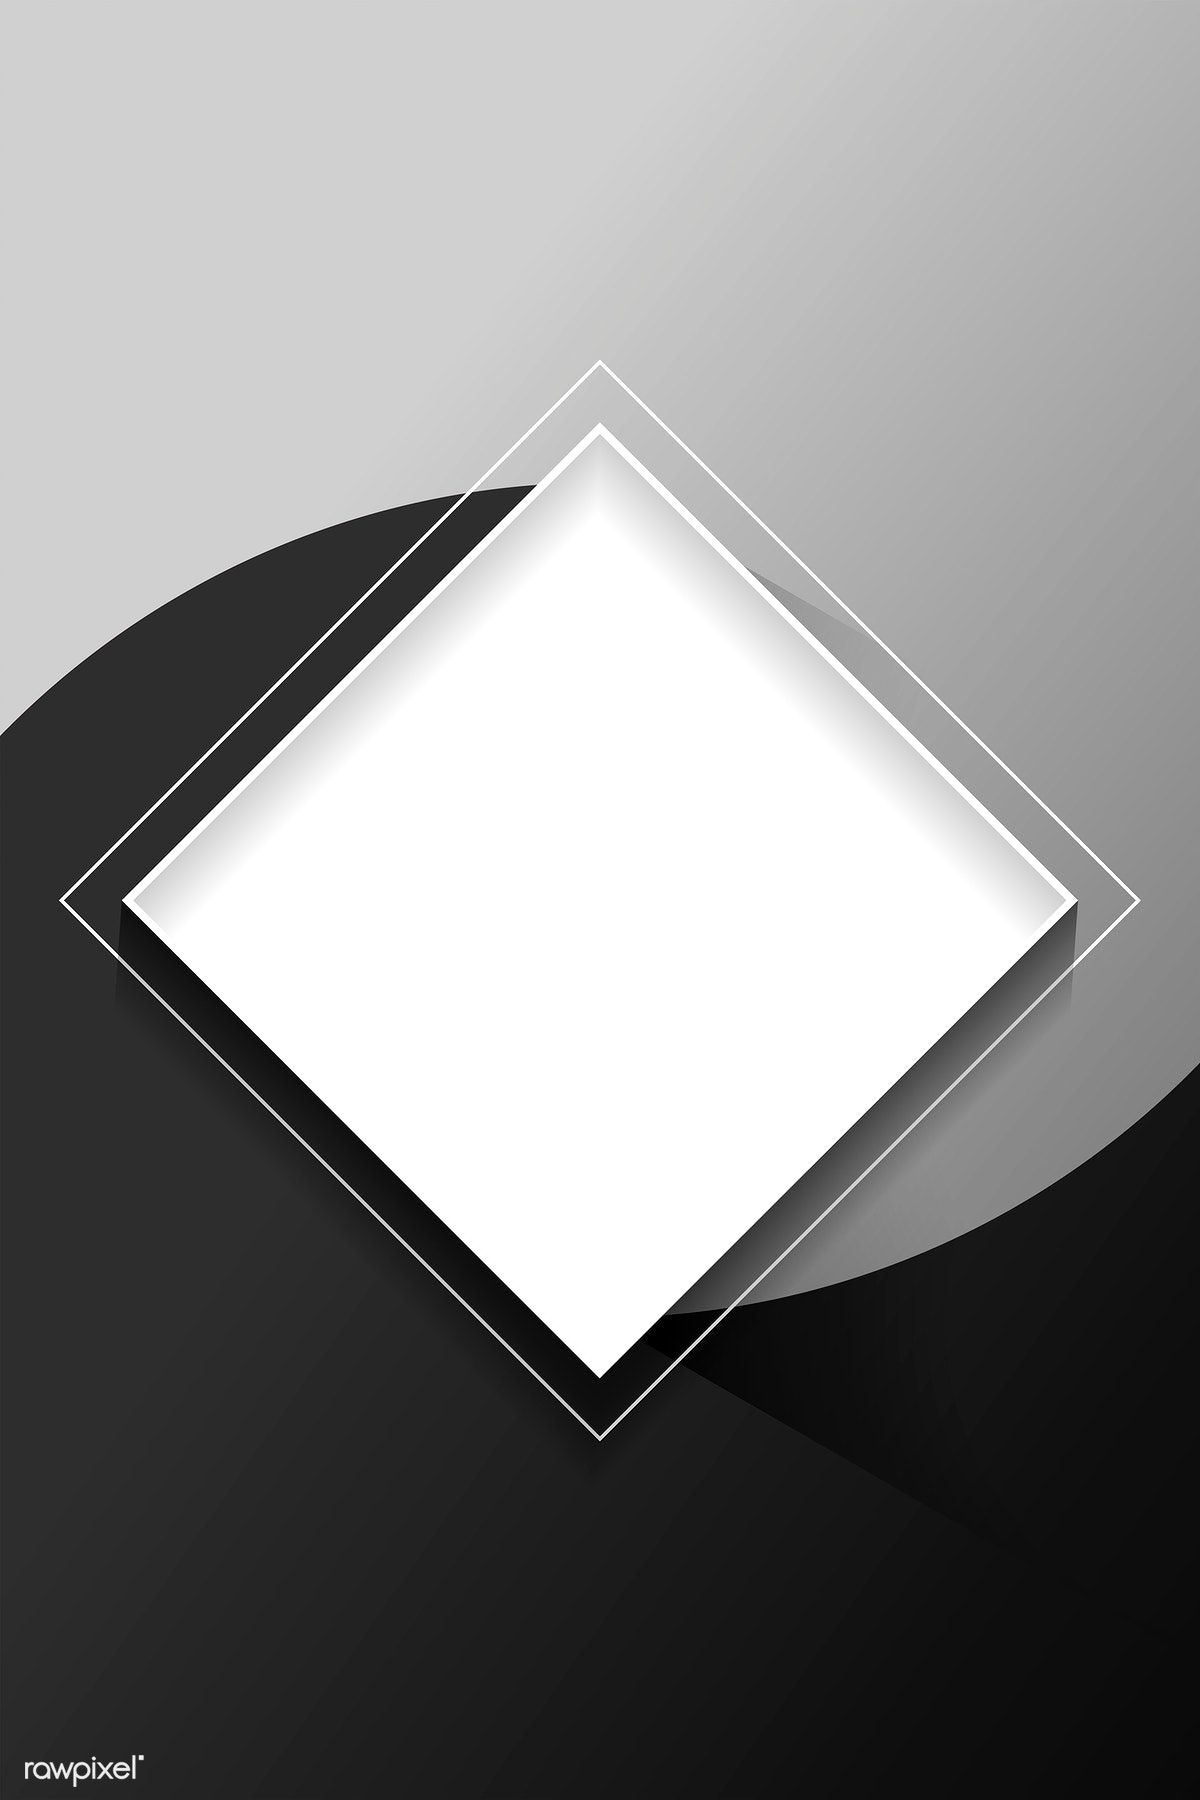 Download premium vector of Blank square white abstract frame 1200x1800